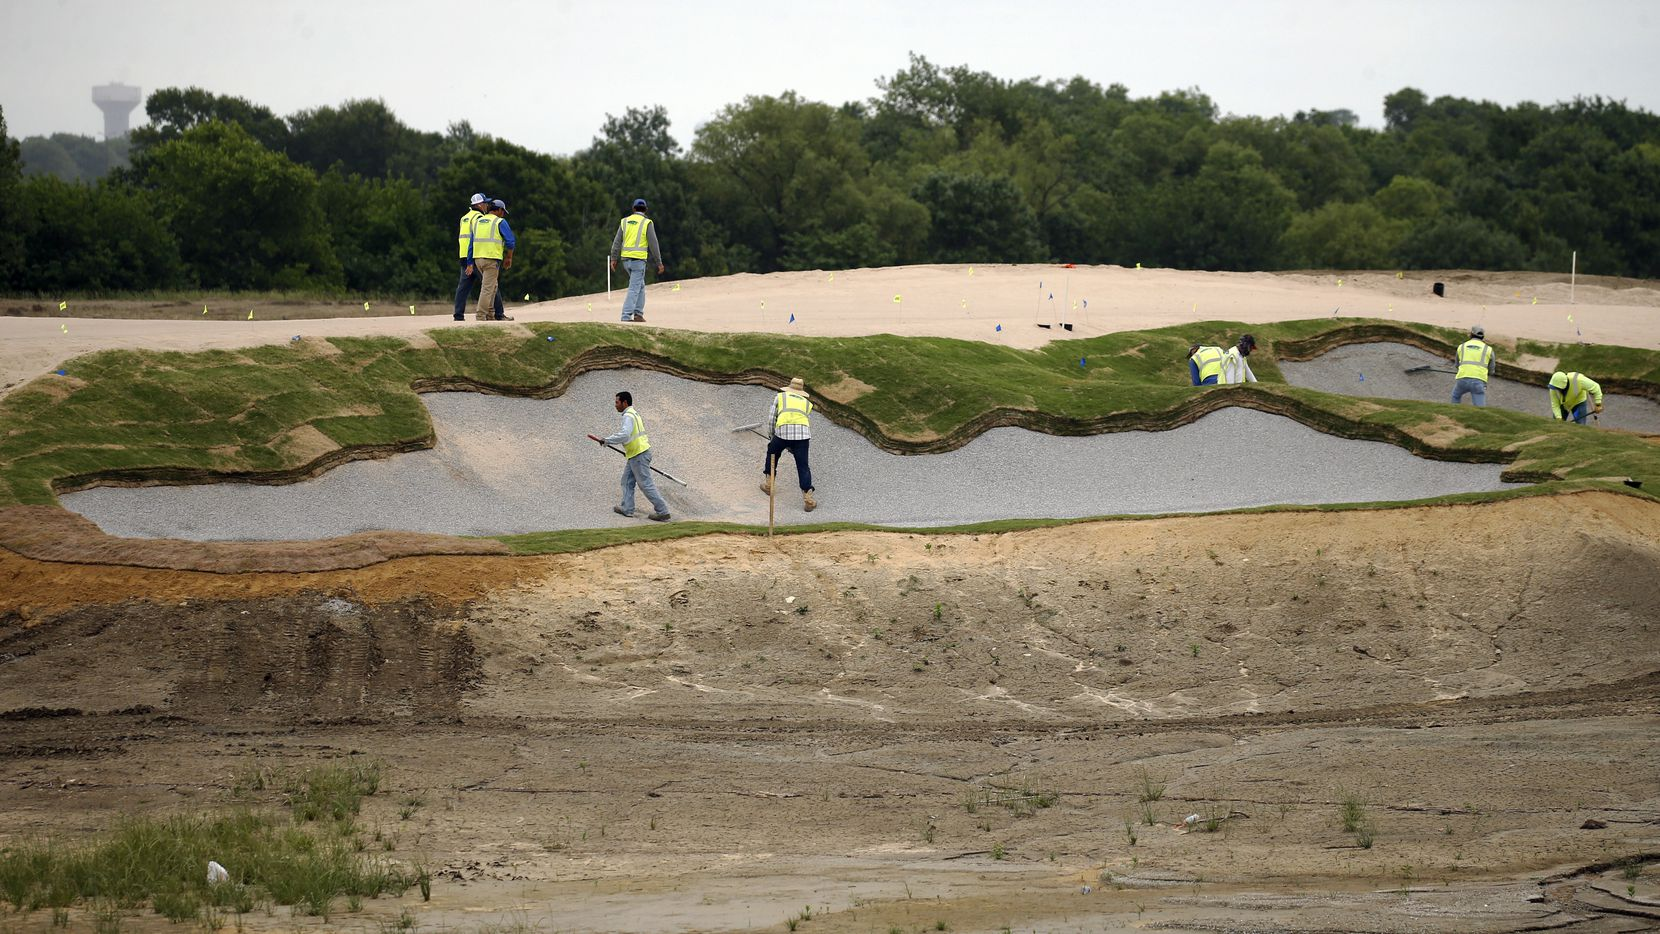 Construction along the East Course designed by Gil Hanse at PGA Frisco in Frisco, Texas, on Wednesday, May 20, 2020. The $520 million project is a mixed-use development that will be home to the PGA of America headquarters and two championship golf courses.